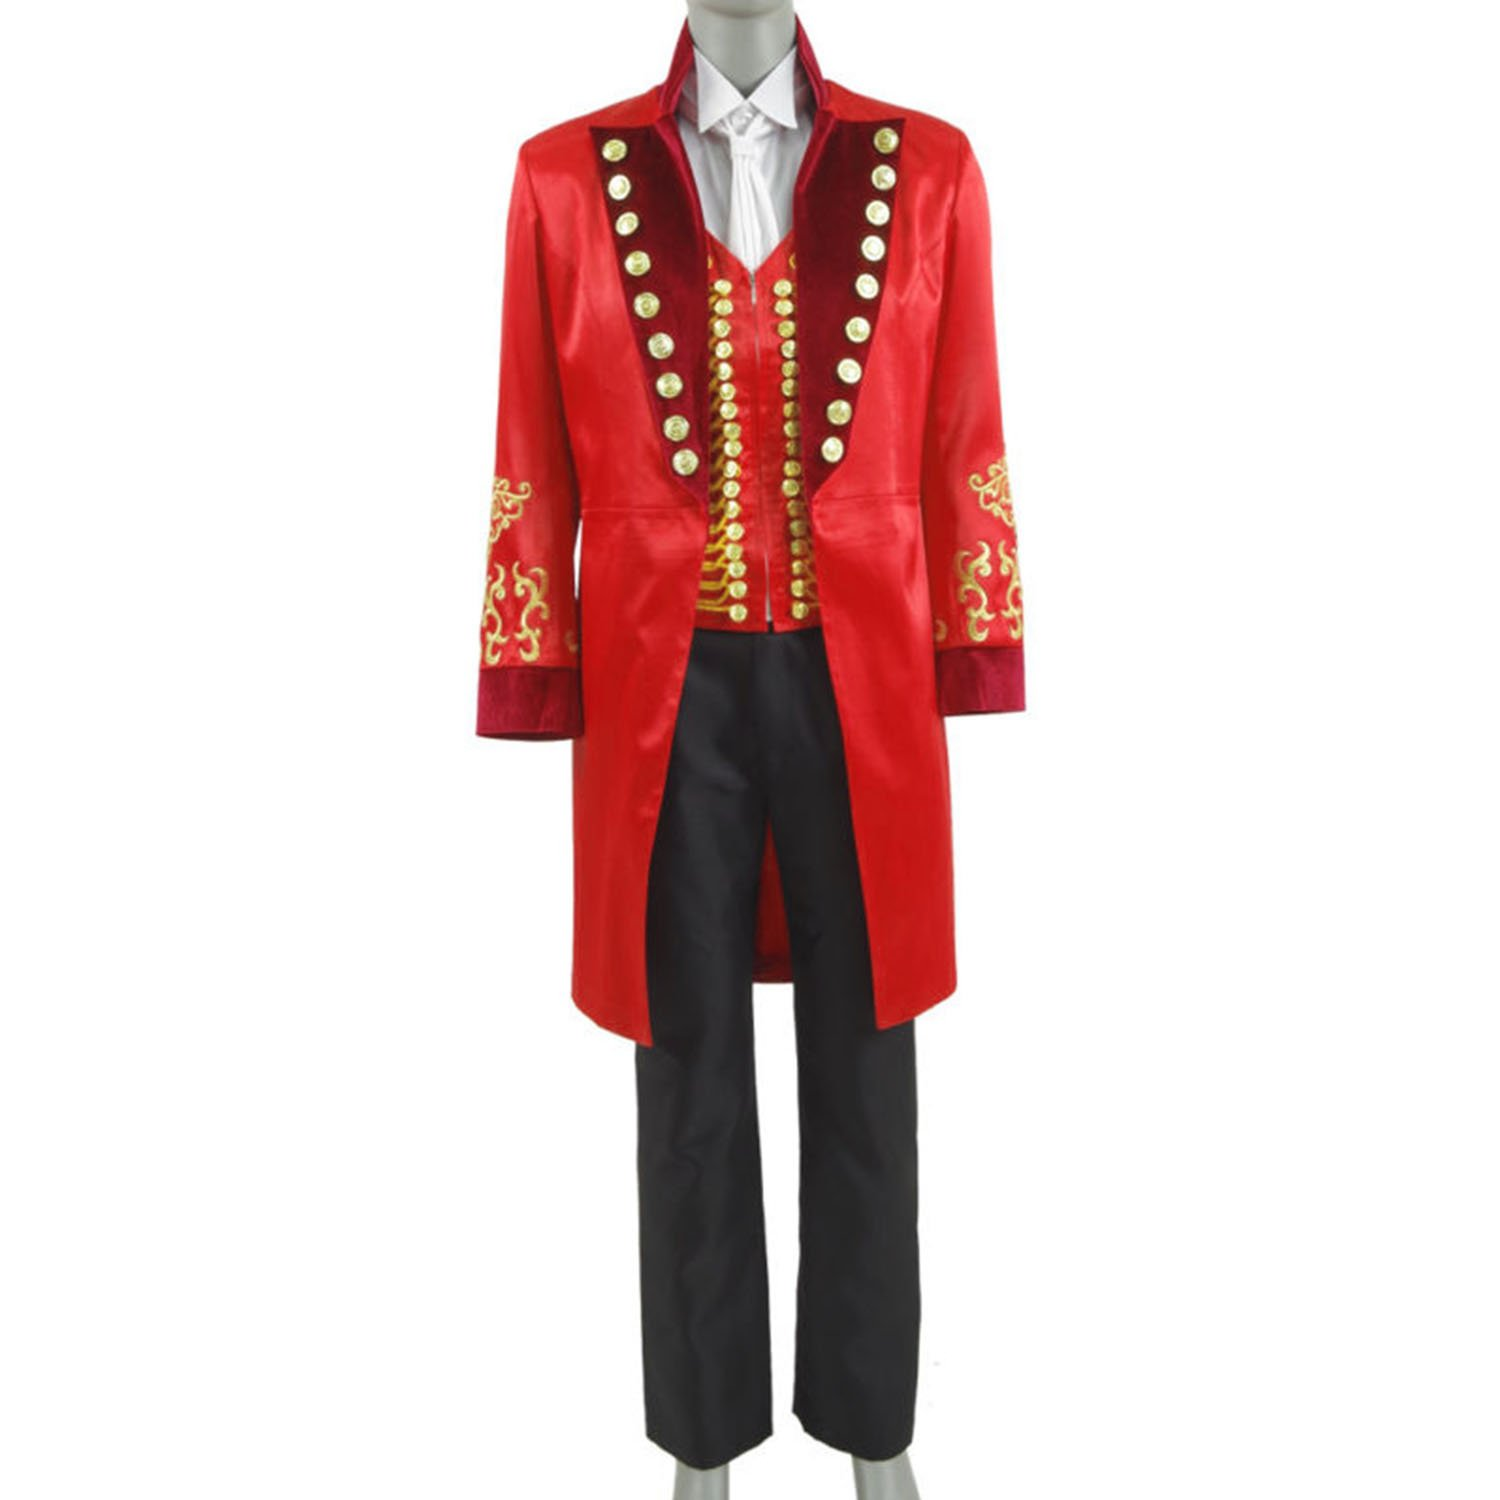 Men's Circus King Stage Performance Suits Halloween Outfit Cosplay Costume ringmaster greatest showman style